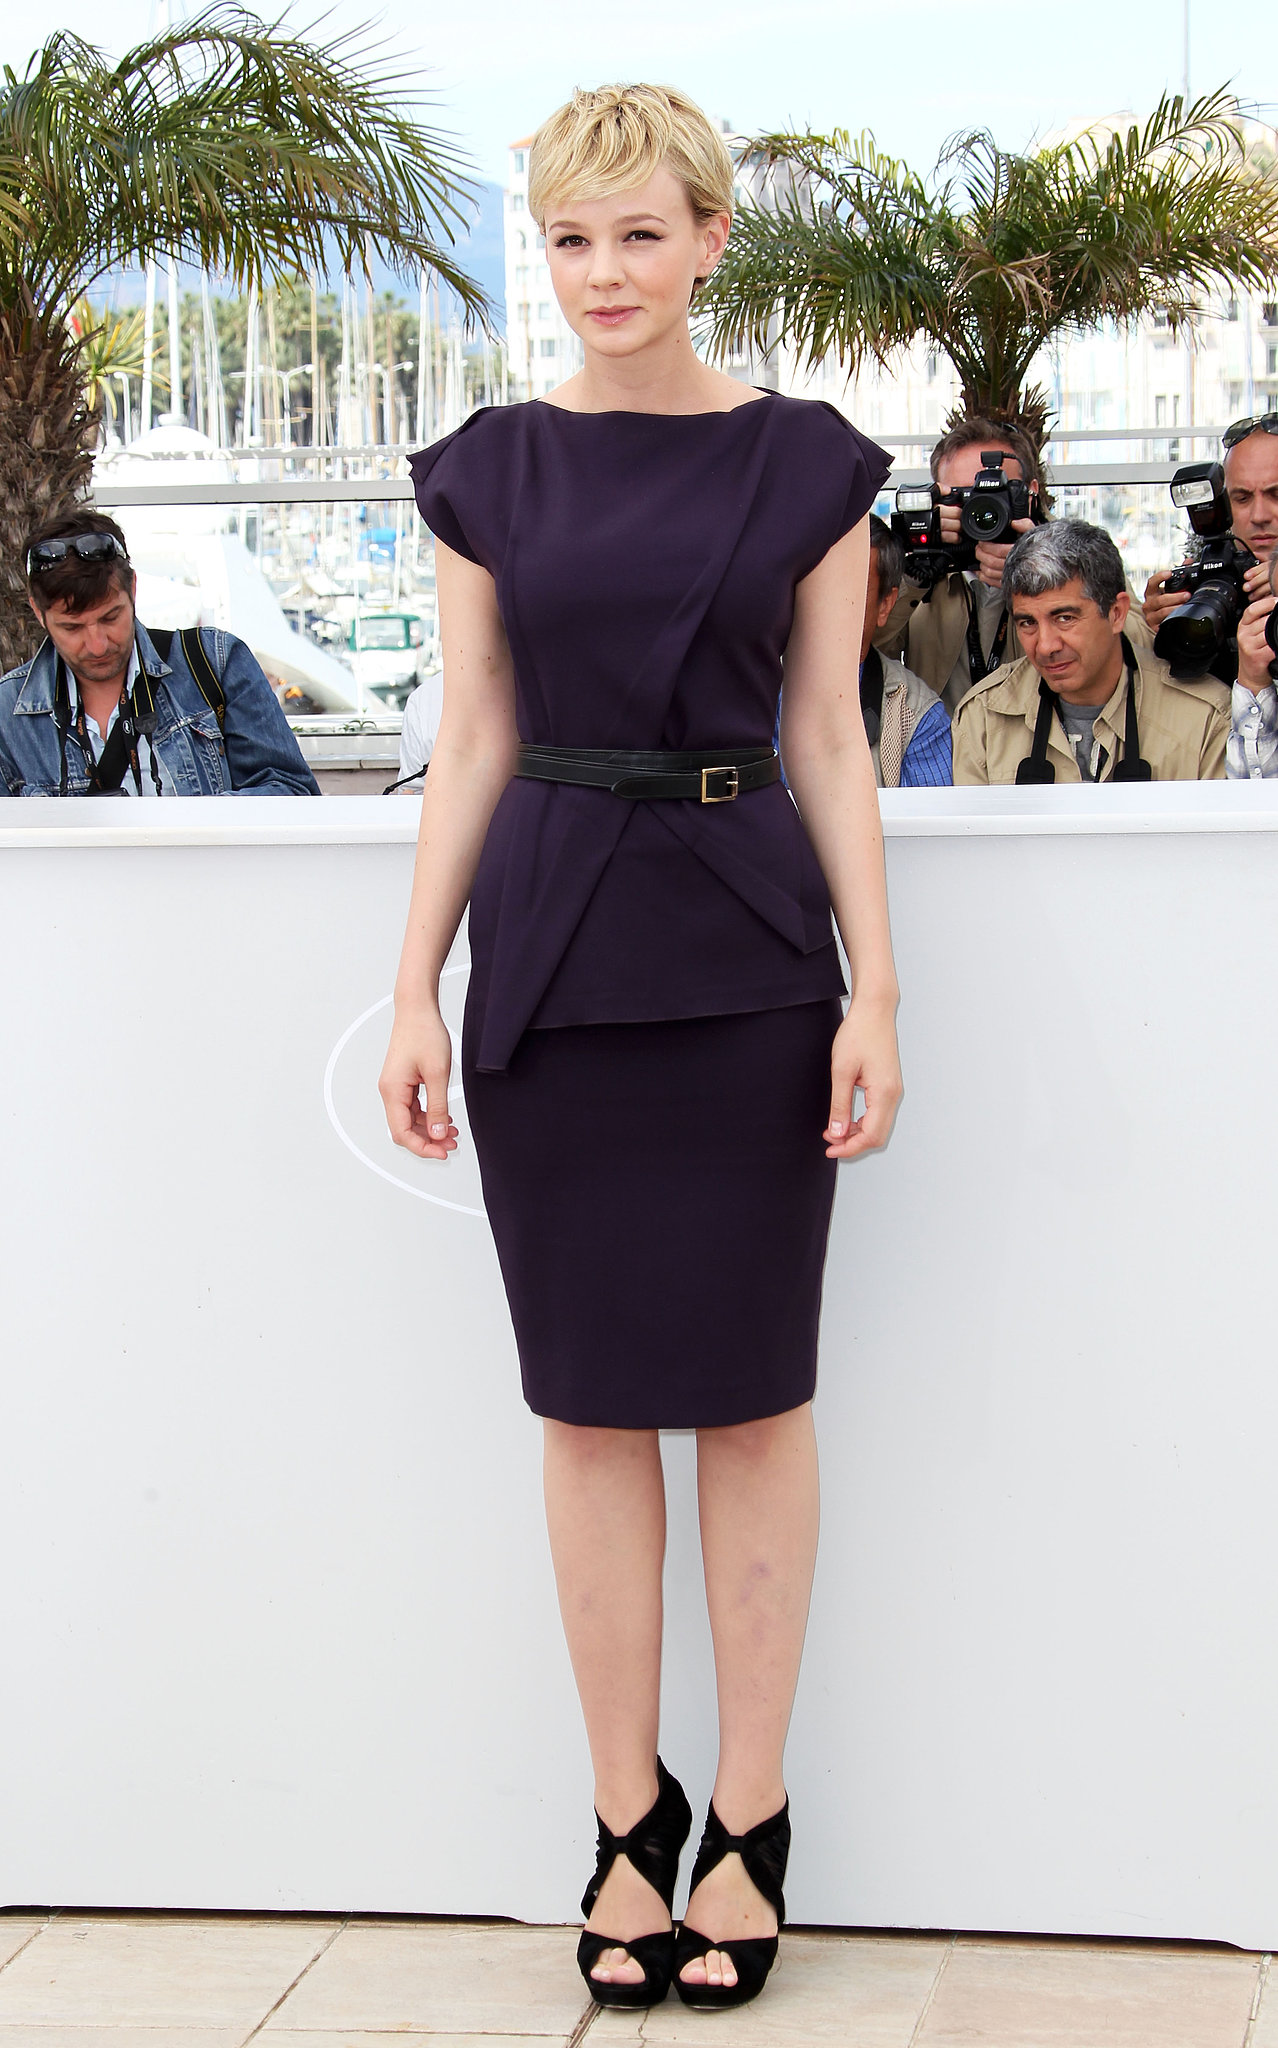 Carey Mulligan in Roland Mouret at the 2010 Cannes Film Festival